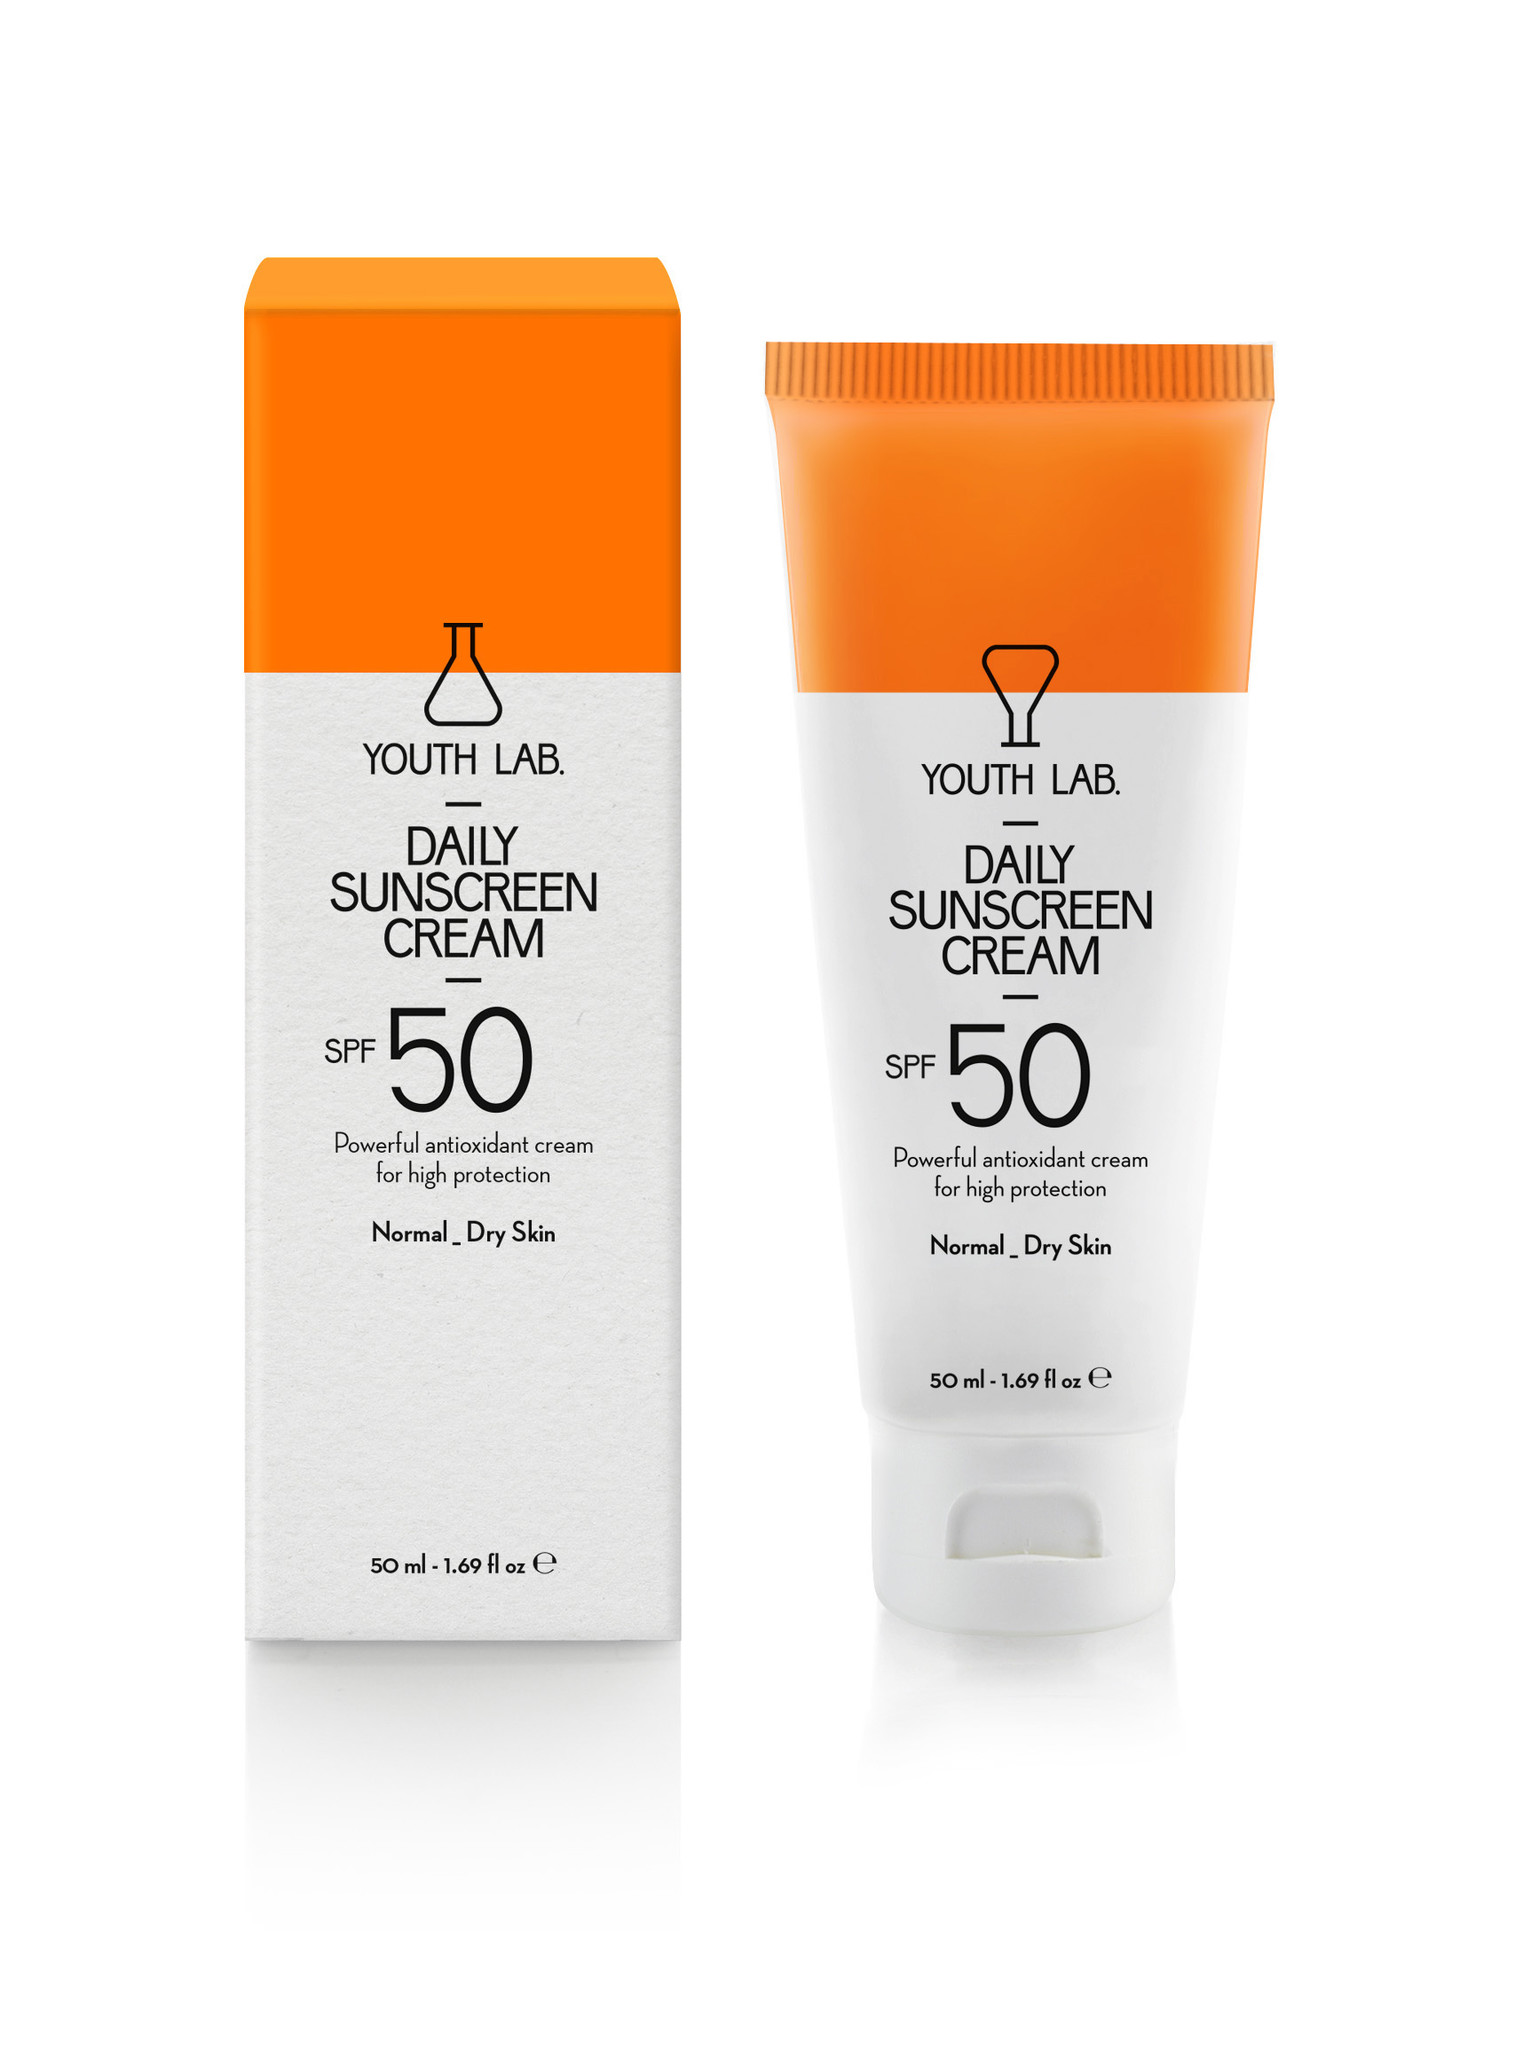 Youth Lab Youth lab Daily sunscreen cream spf 50 Normal_dry skin 50ml